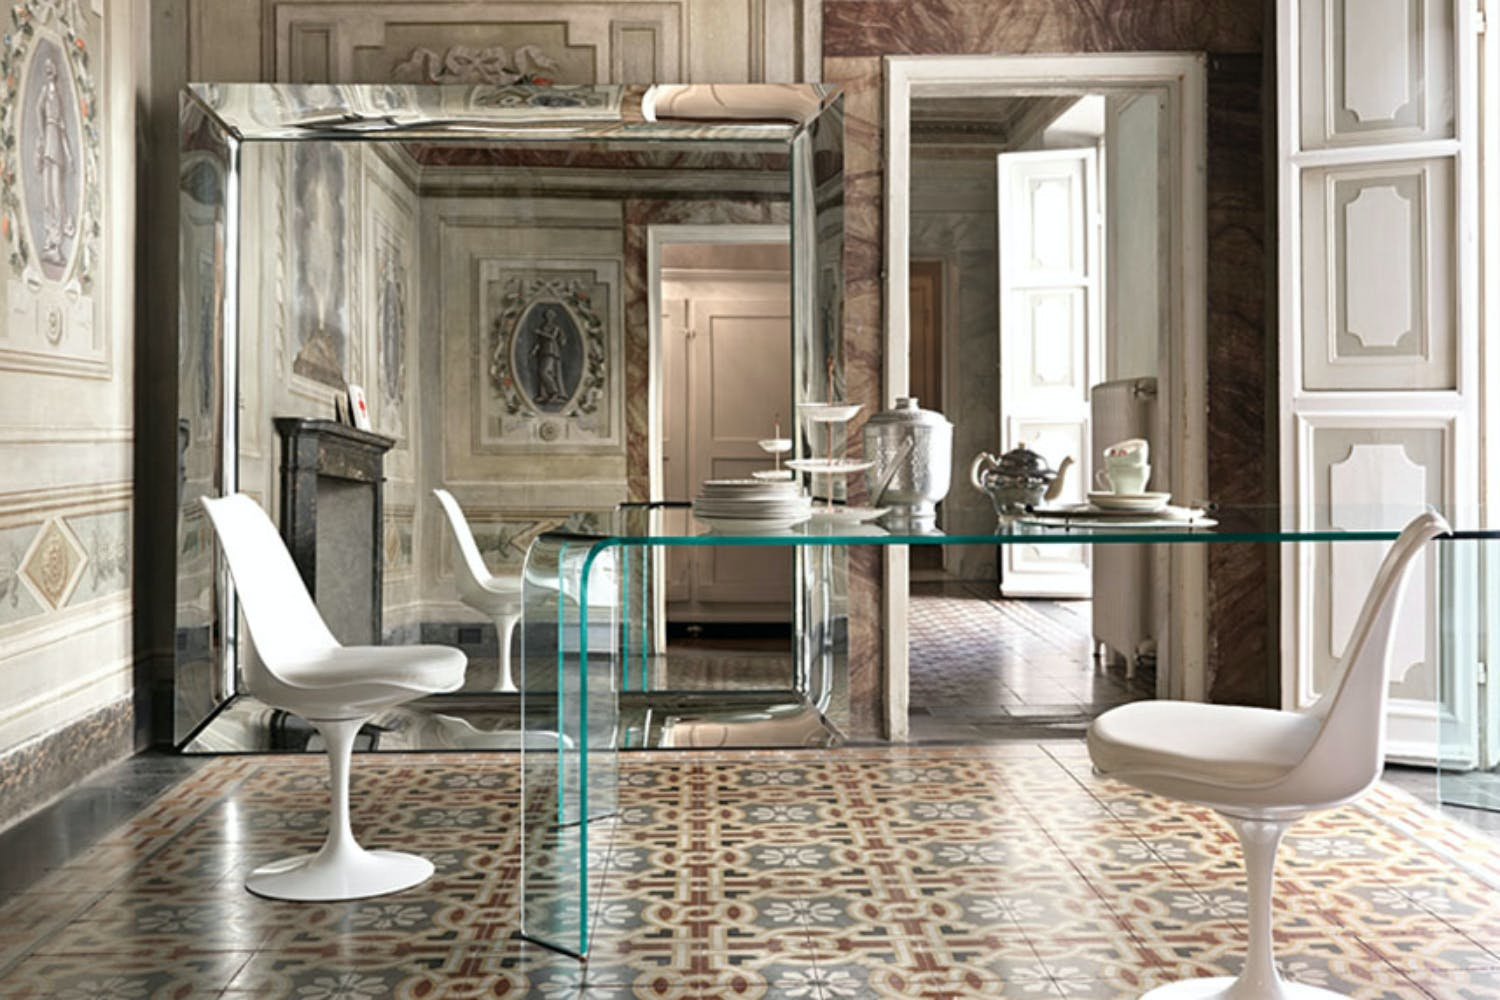 caadre mirror by philippe starck for fiam italia space furniture. Black Bedroom Furniture Sets. Home Design Ideas